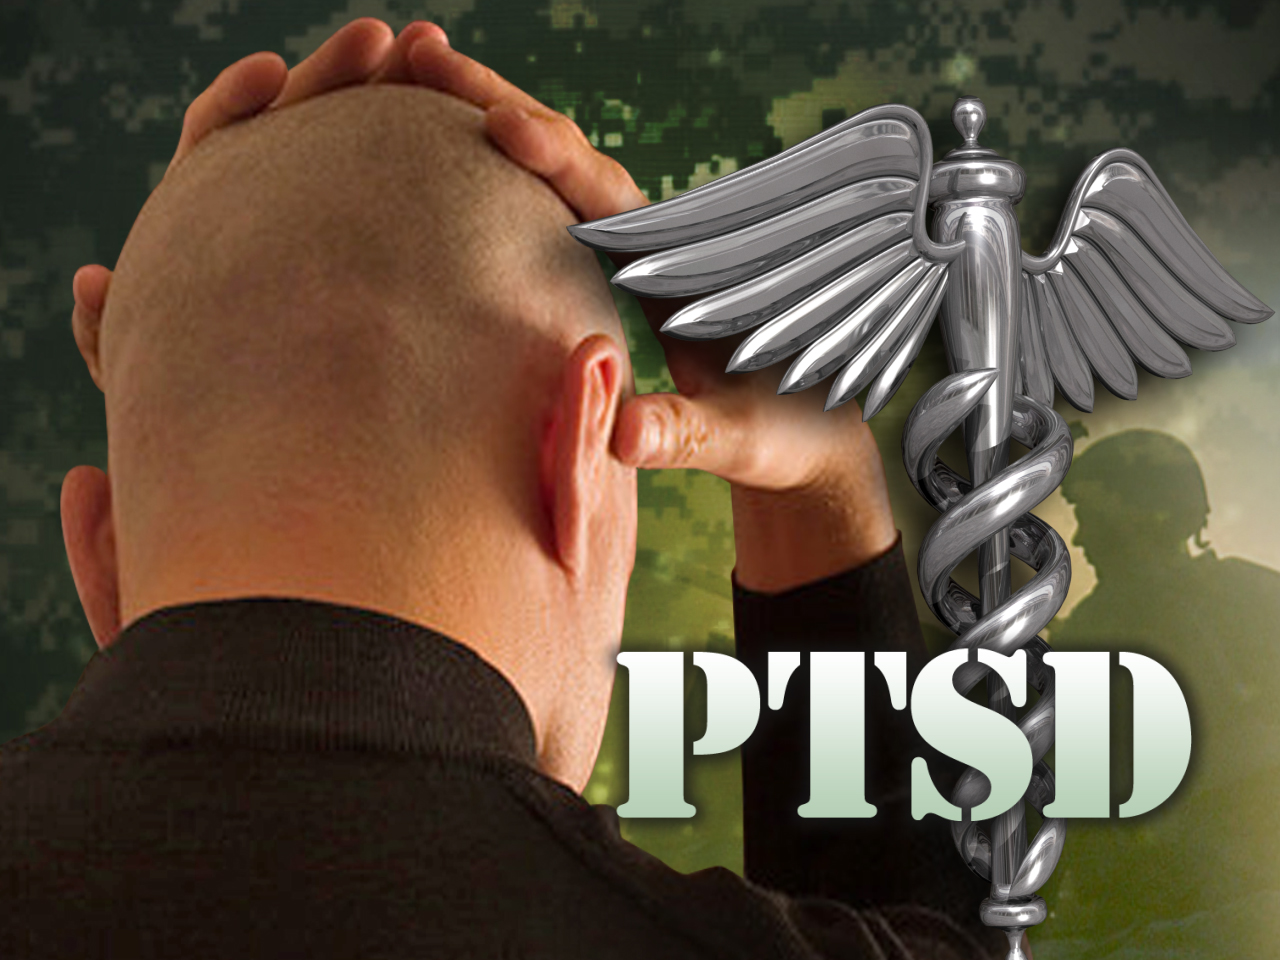 Disabled Iraq War Veteran Facing Life In Prison For Less Than 1 Ounce Of